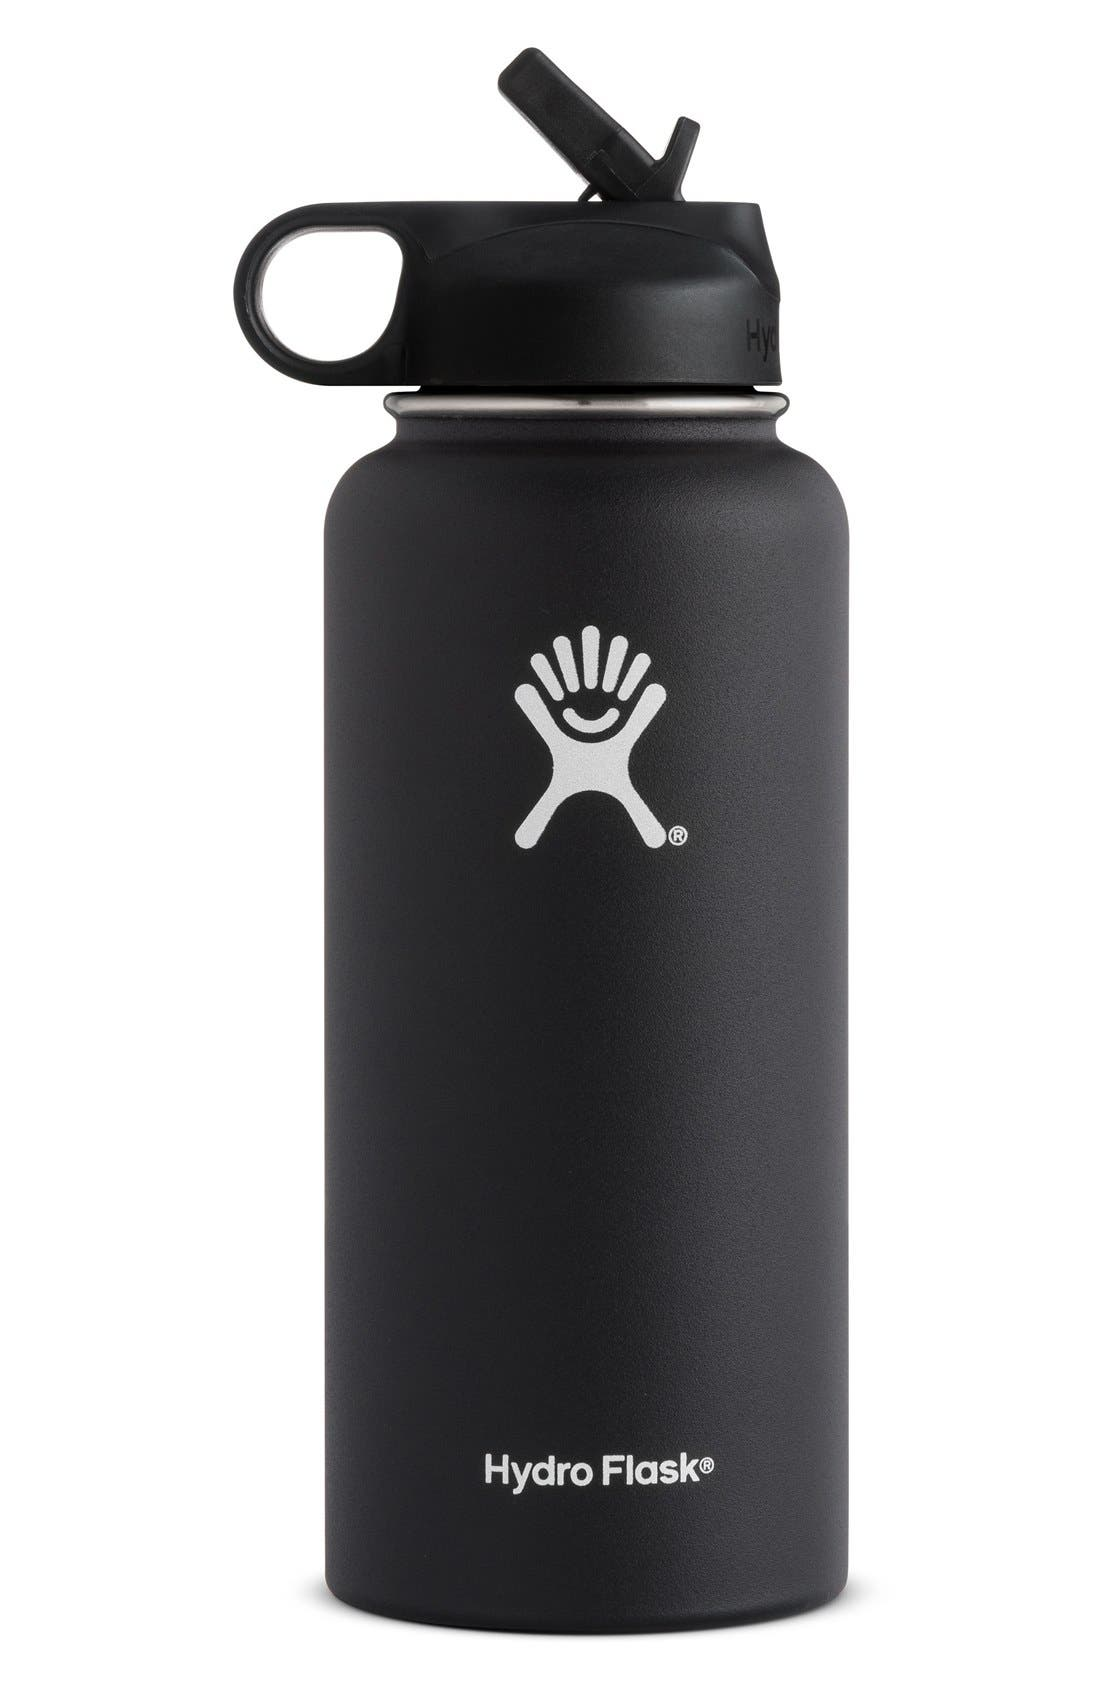 Main Image - Hydro Flask 32-Ounce Wide Mouth Bottle with Straw Lid